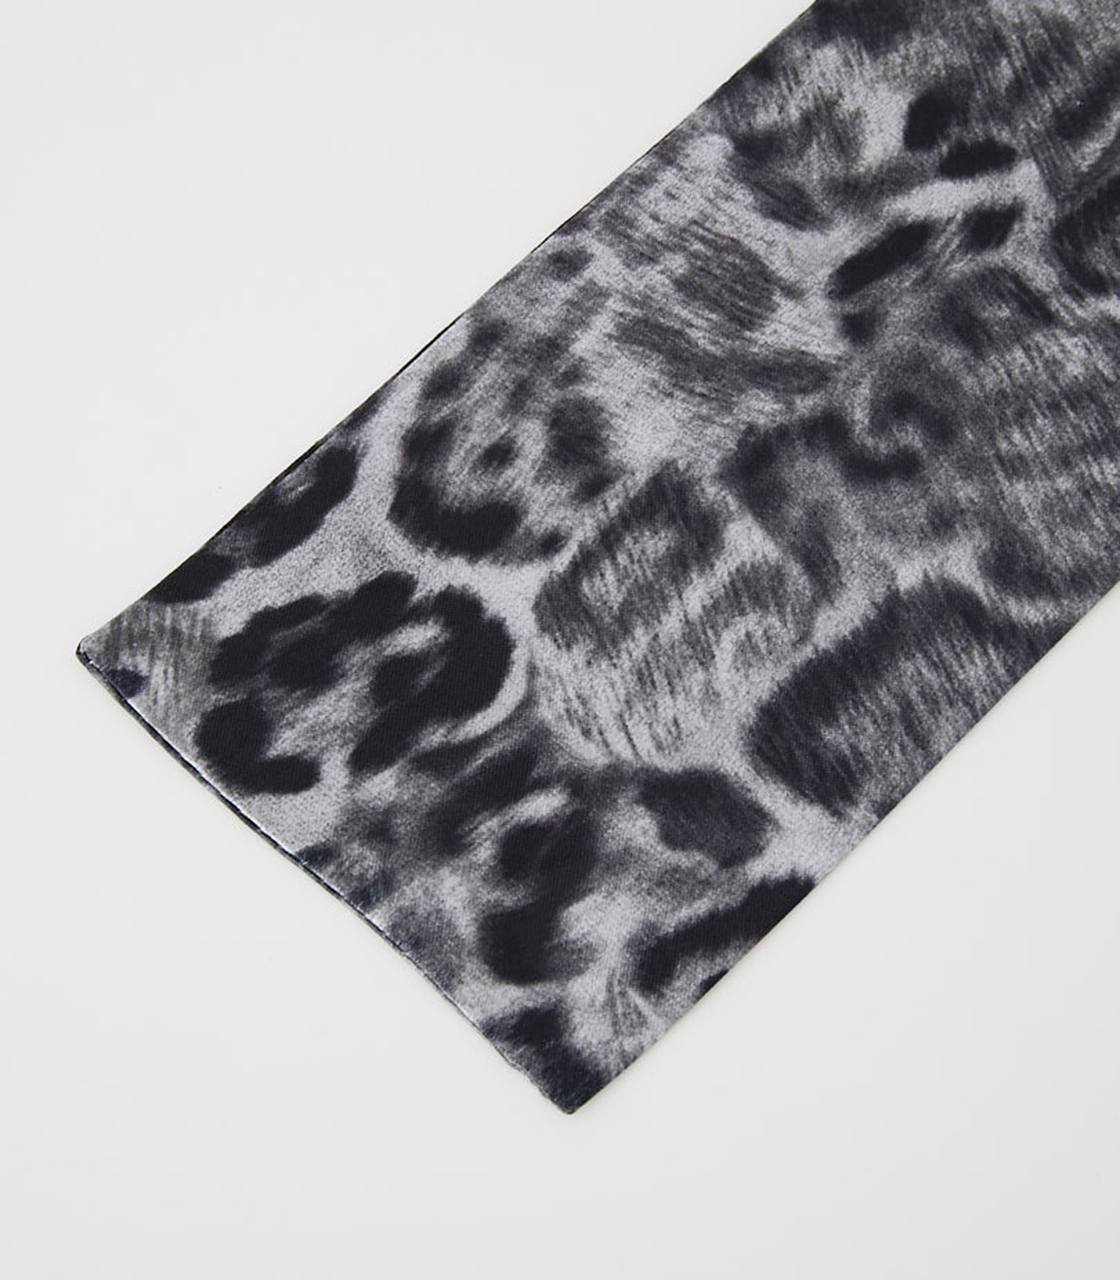 LEOPARD SCARF NECKLACE/レオパードスカーフネックレス 詳細画像 柄GRY 5